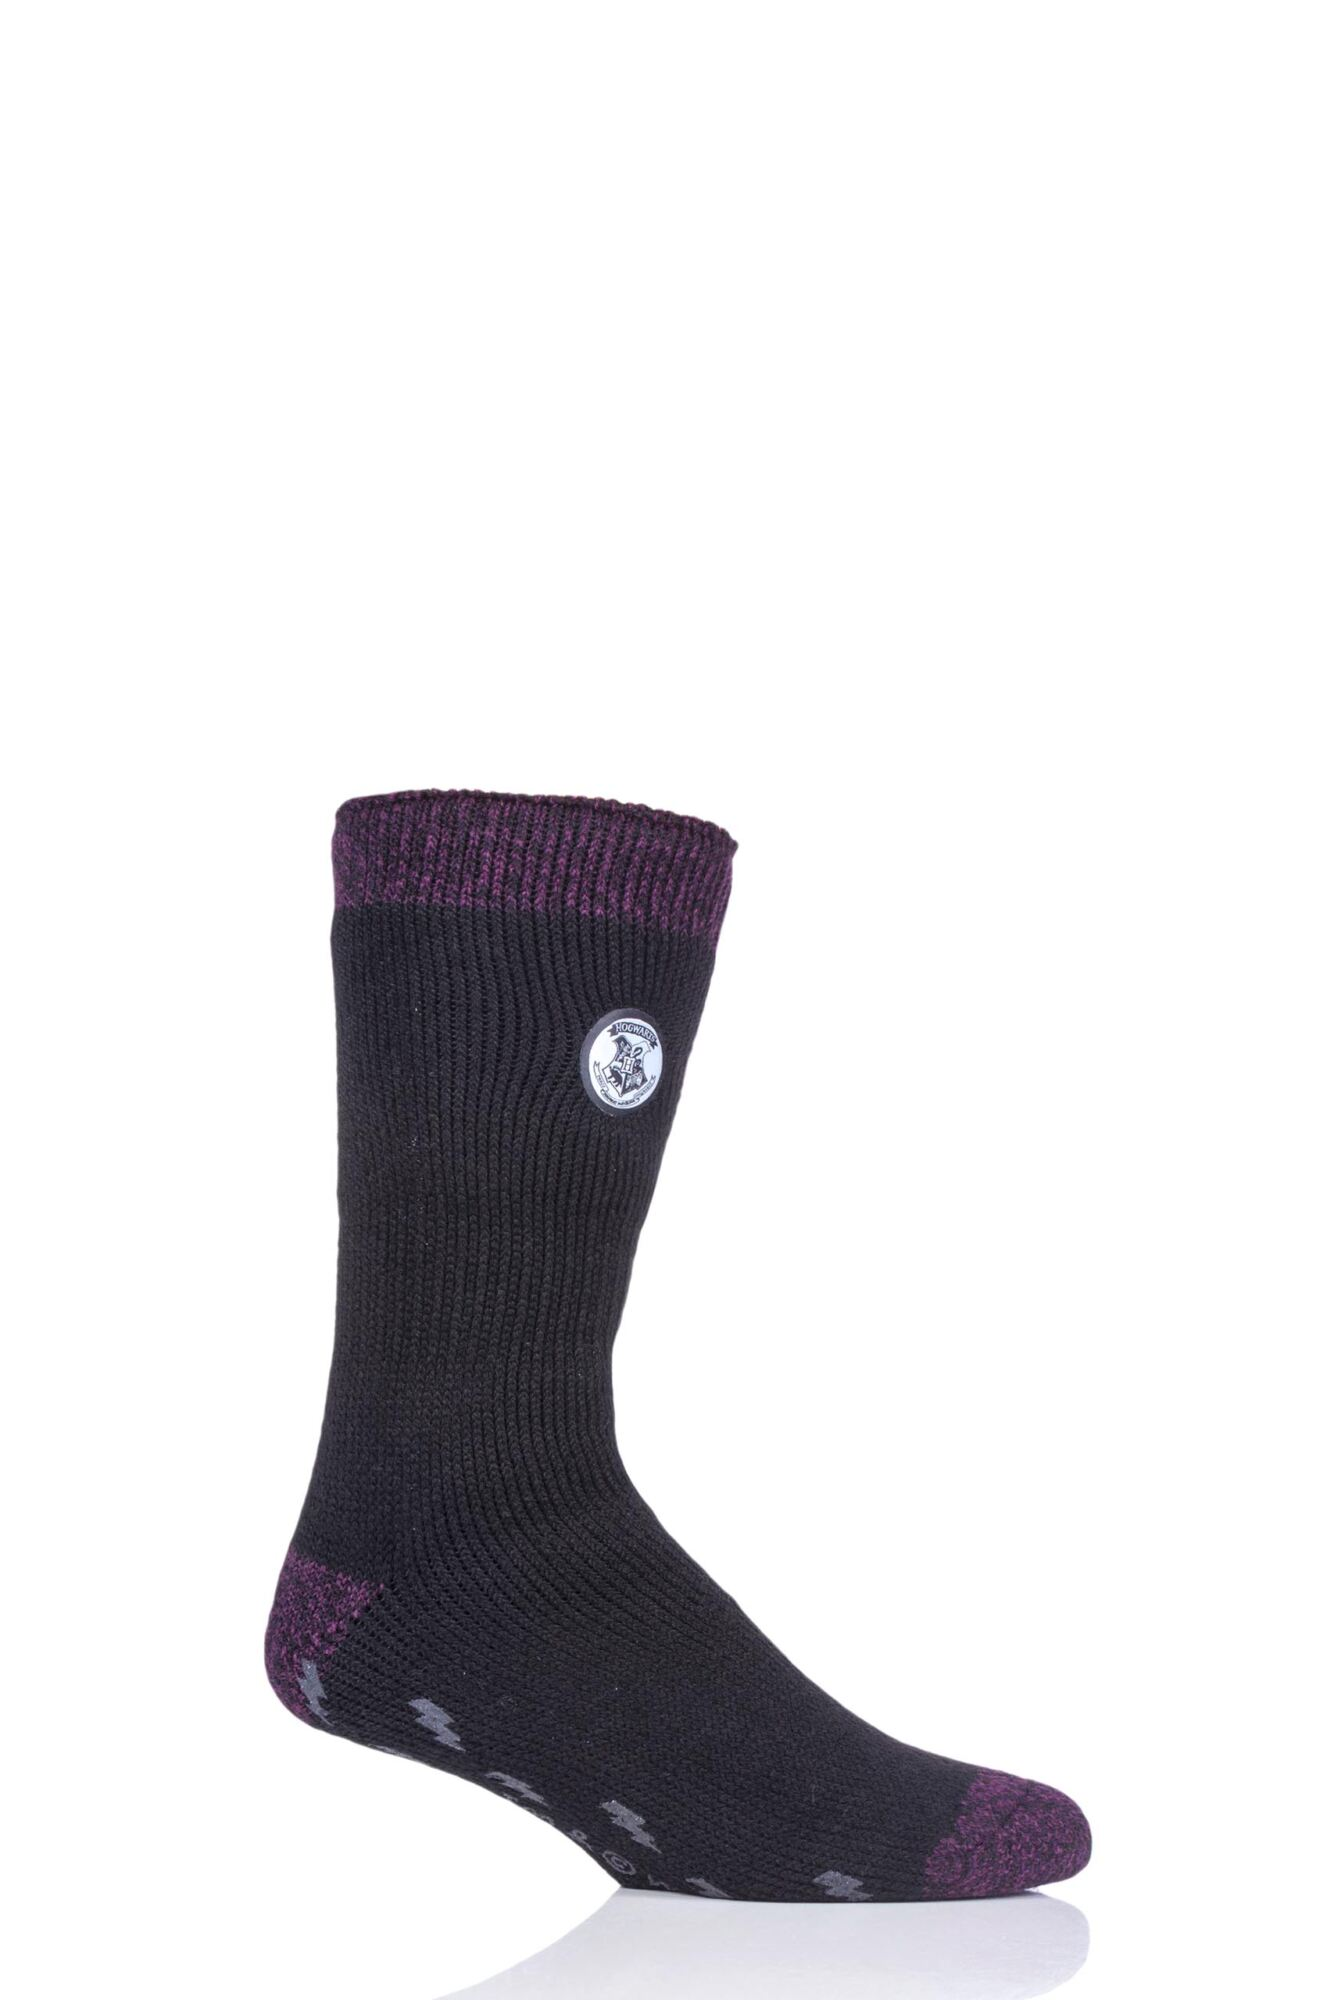 1 Pair Harry Potter Thermal Socks with Grips Men's - Heat Holders